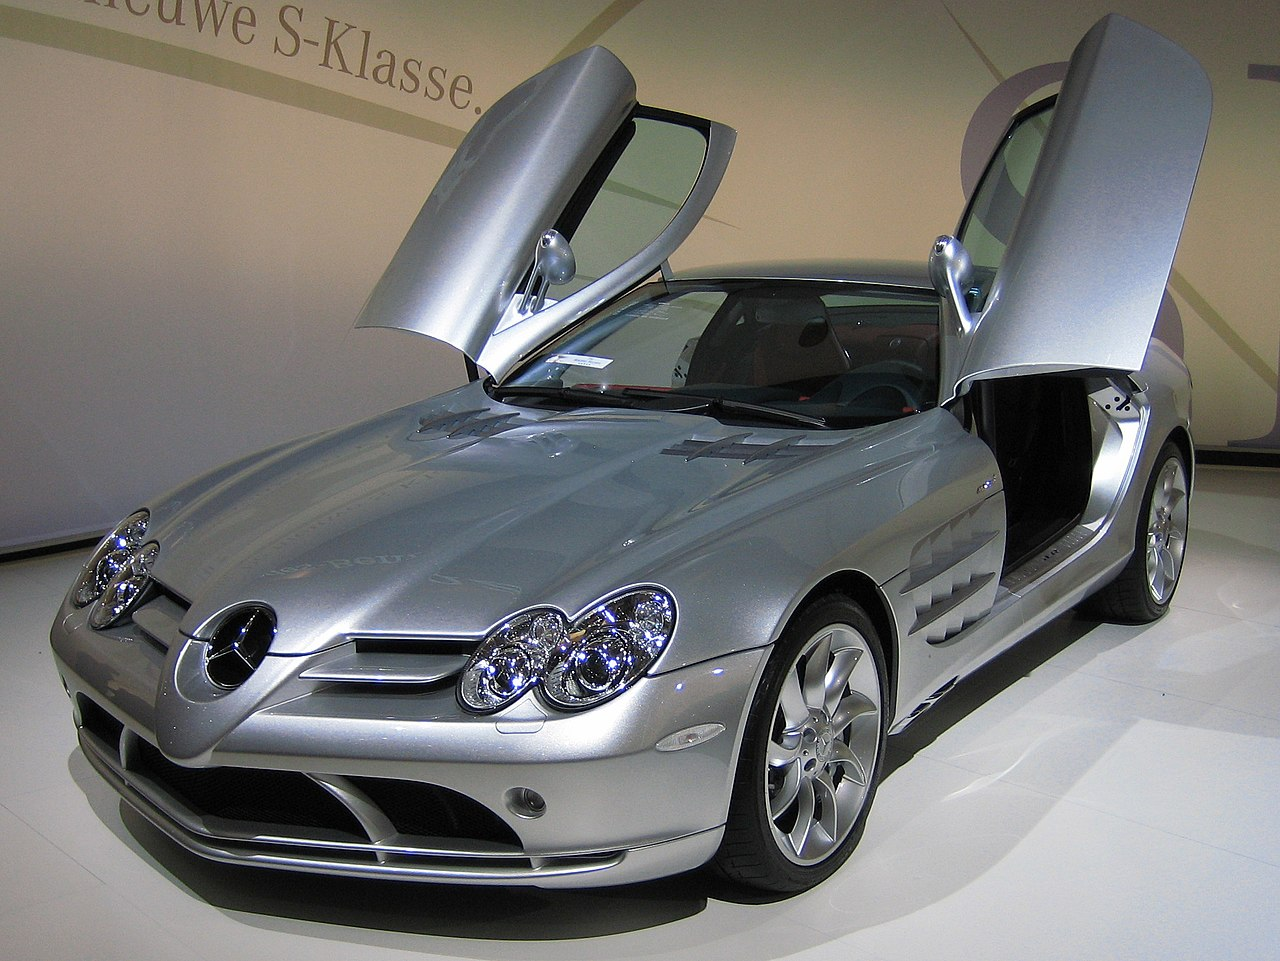 File:Mercedes-Benz SLR McLaren 2 cropped.jpg - Wikimedia Commons